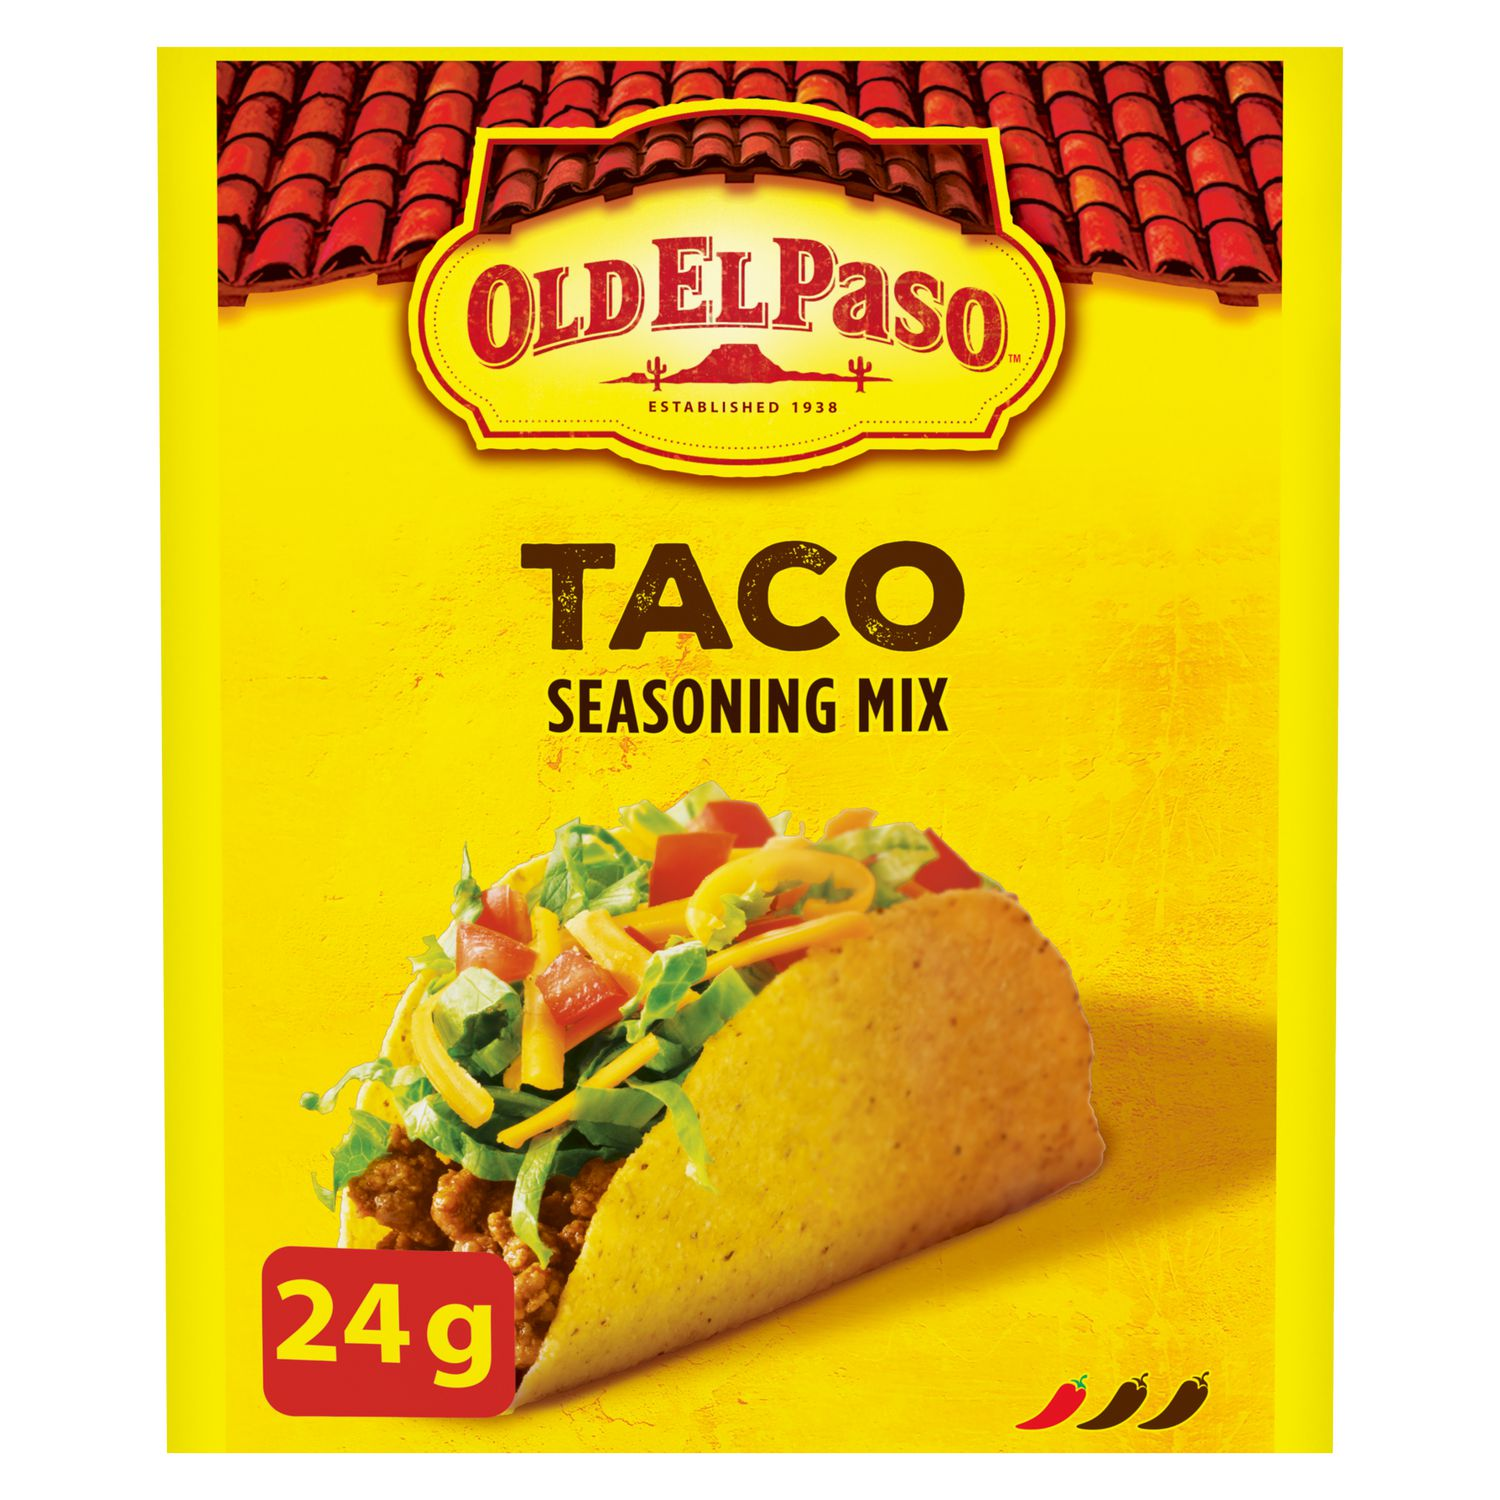 Old El Paso Taco Seasoning Mix Walmart Canada